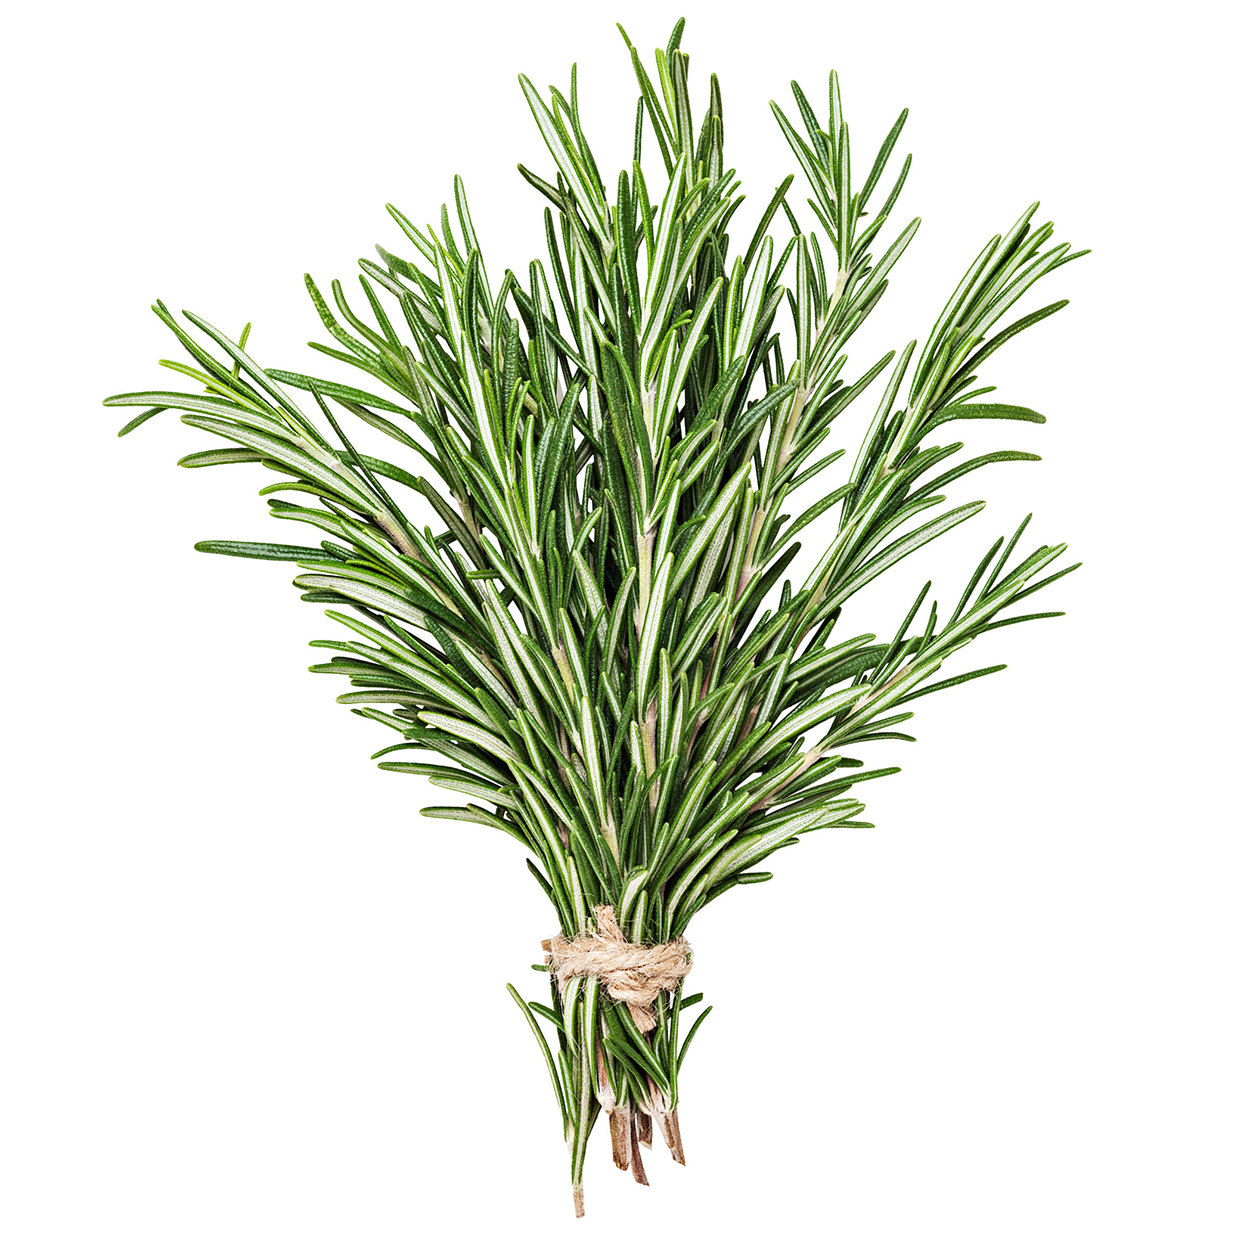 fresh rosemary bunch wrapped together on white background